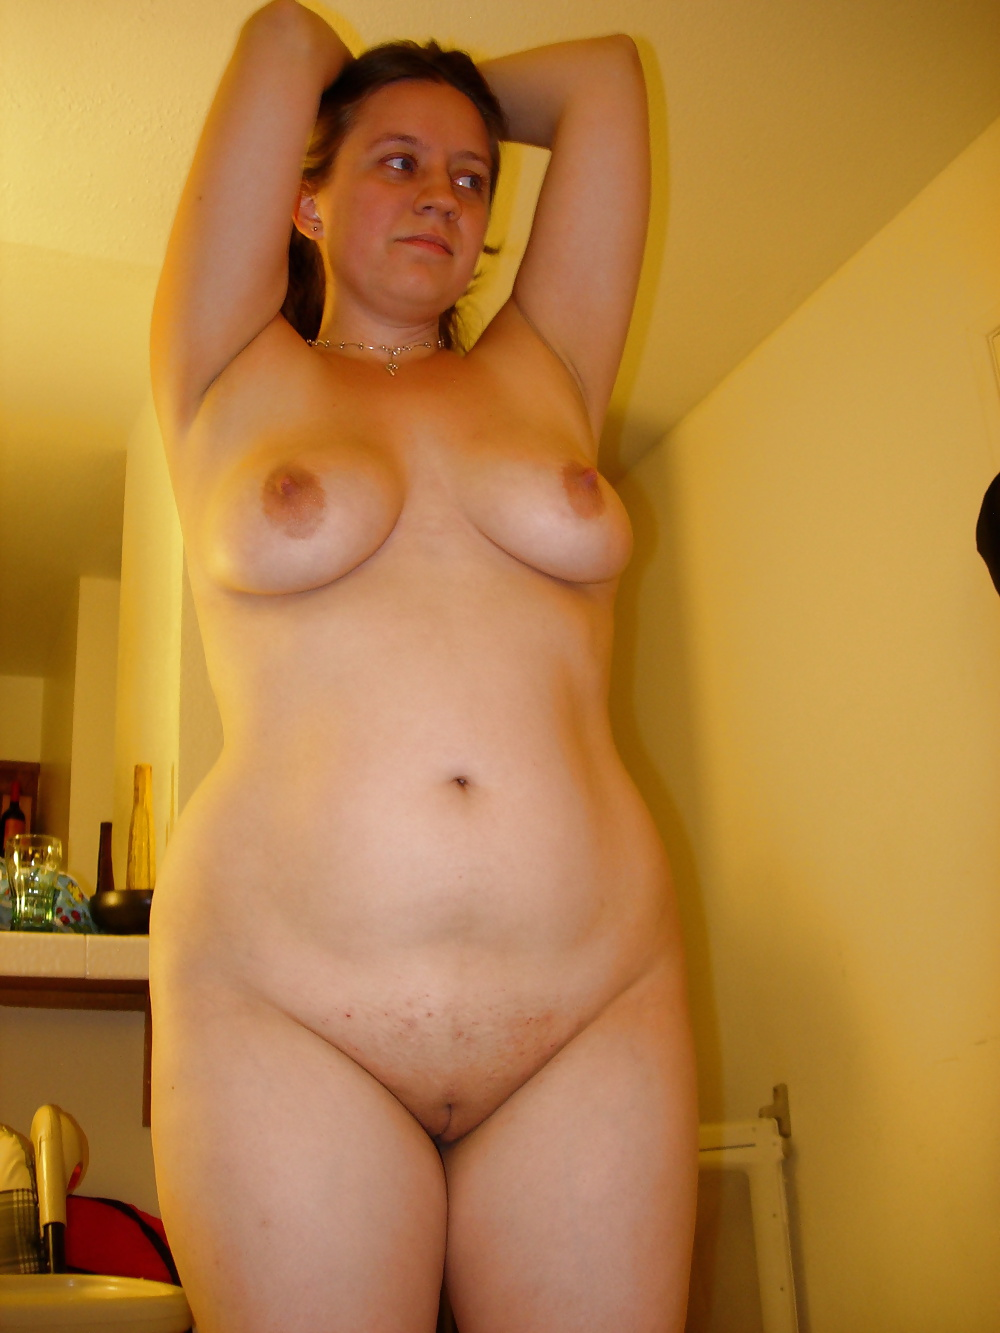 fuck-chubby-face-hot-nude-girls-wilde